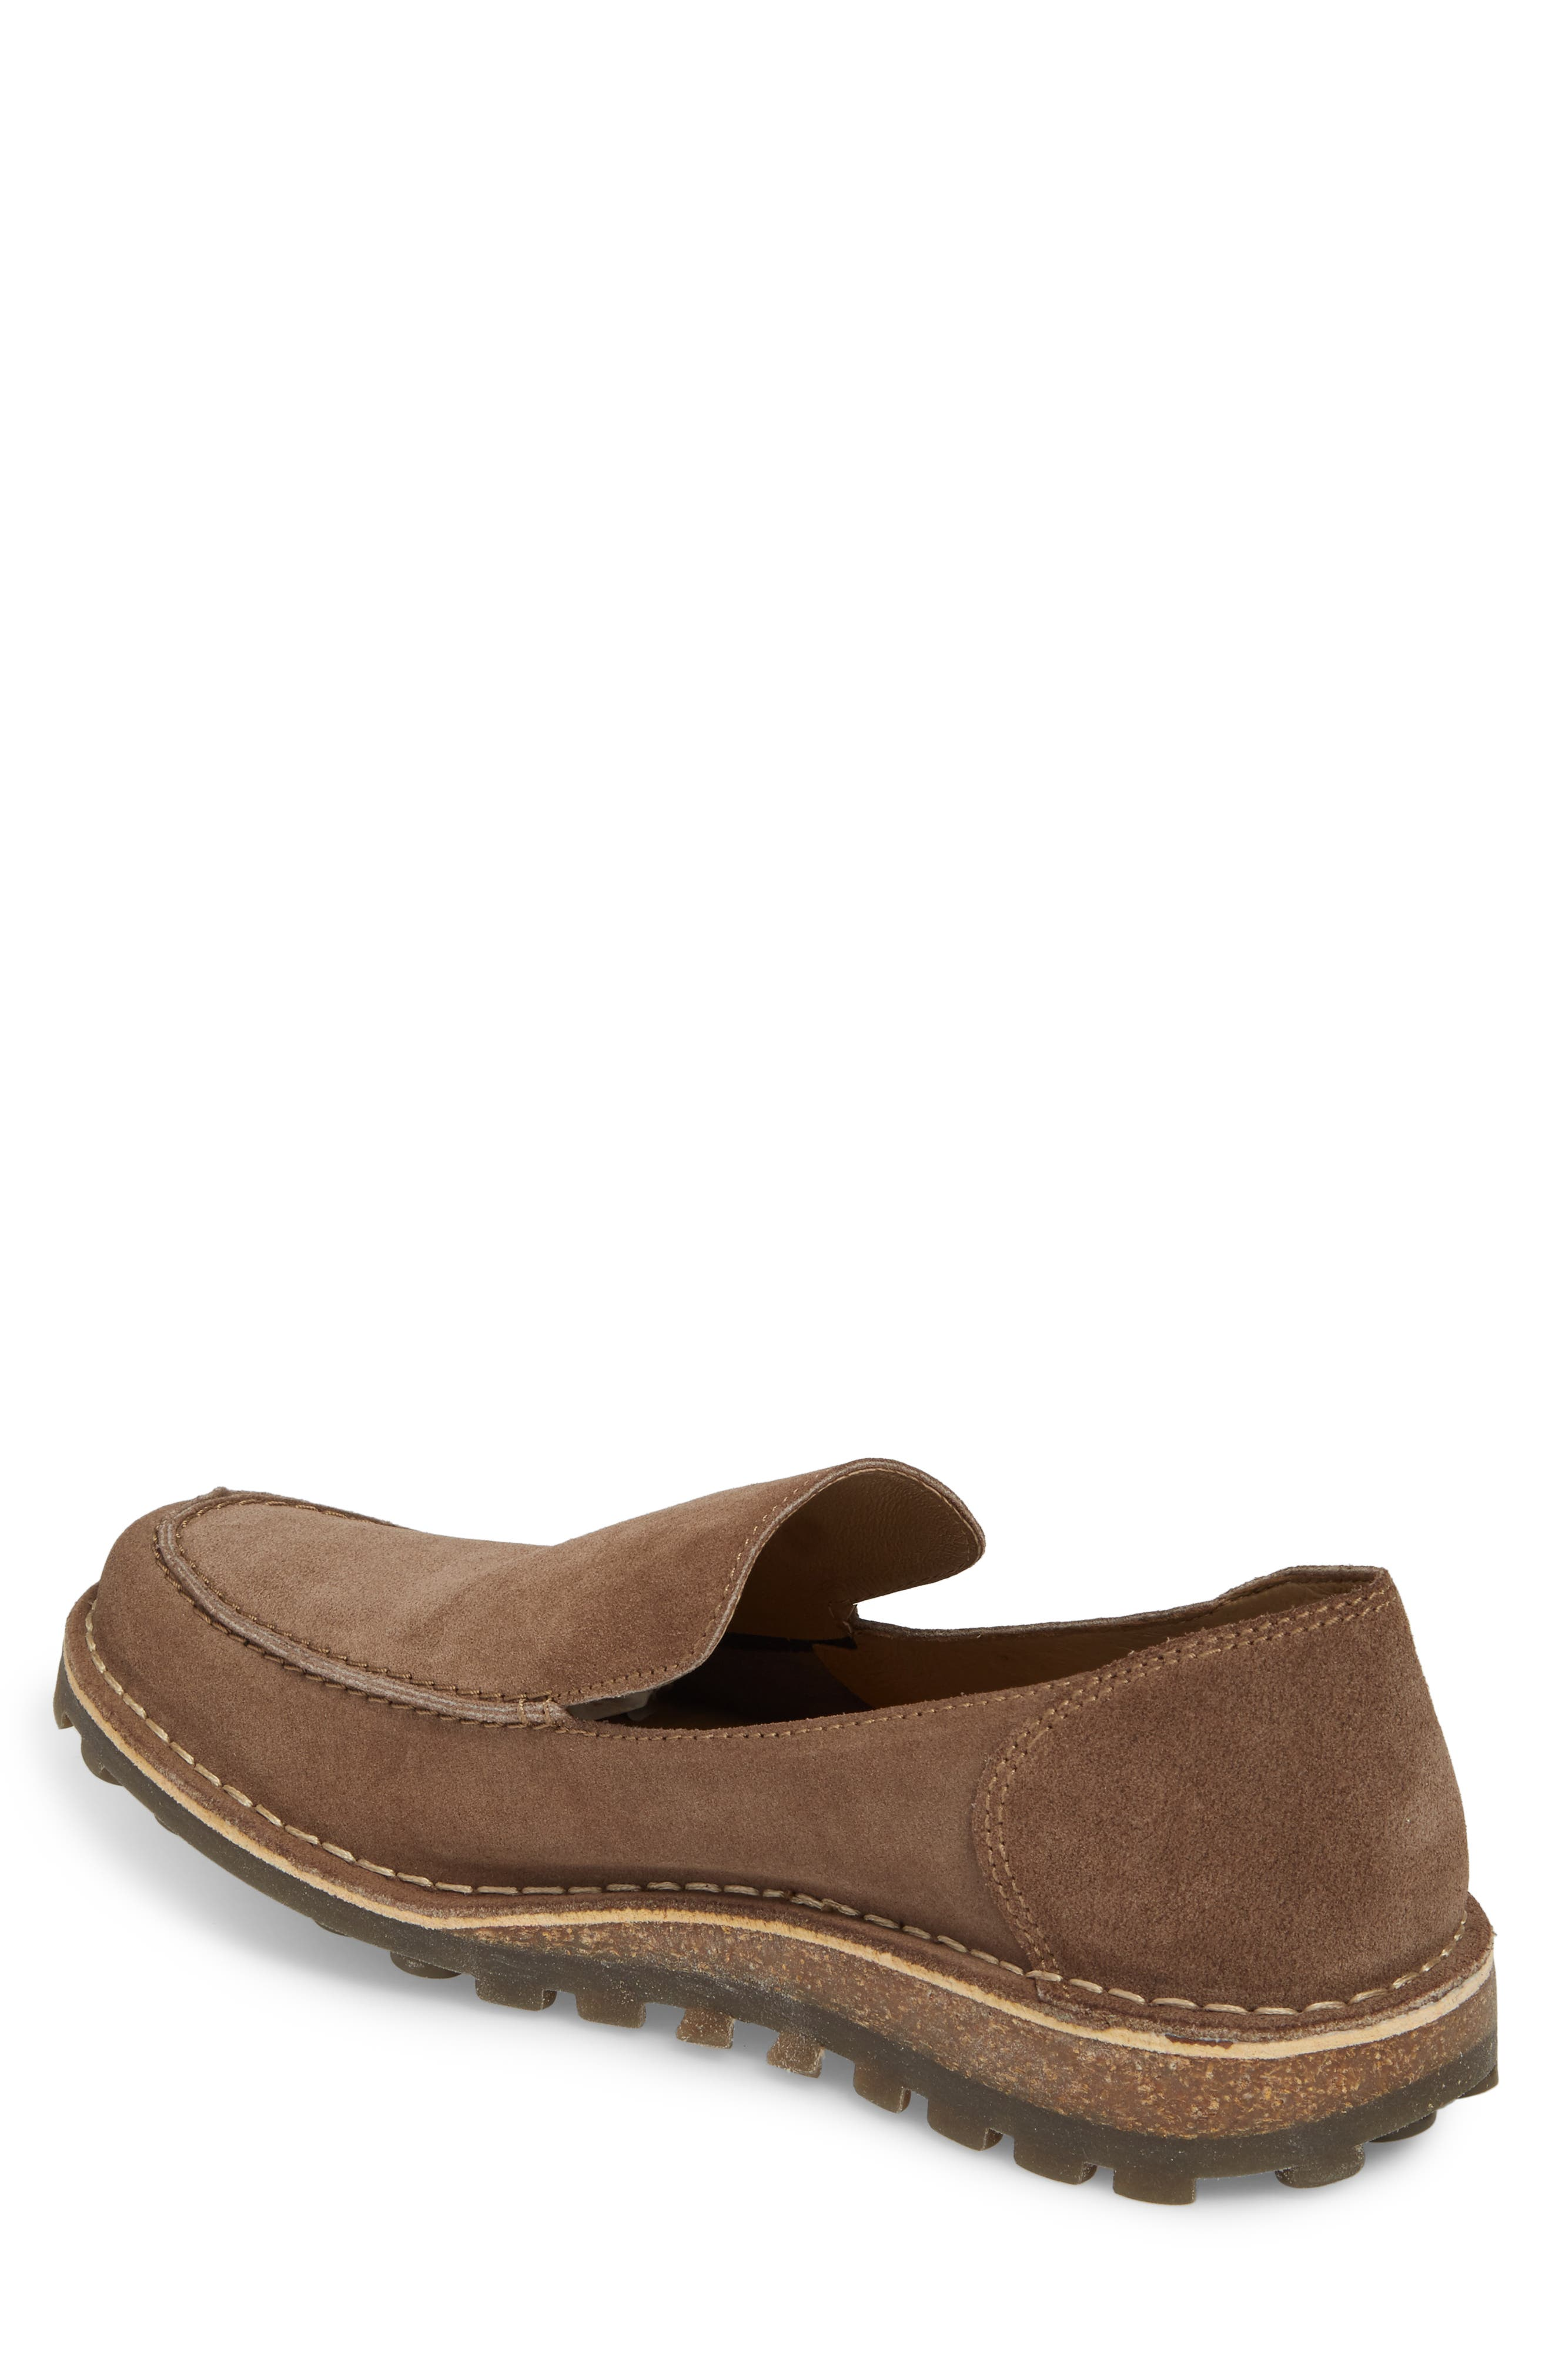 Meve Moc Toe Loafer,                             Alternate thumbnail 2, color,                             Taupe Suede